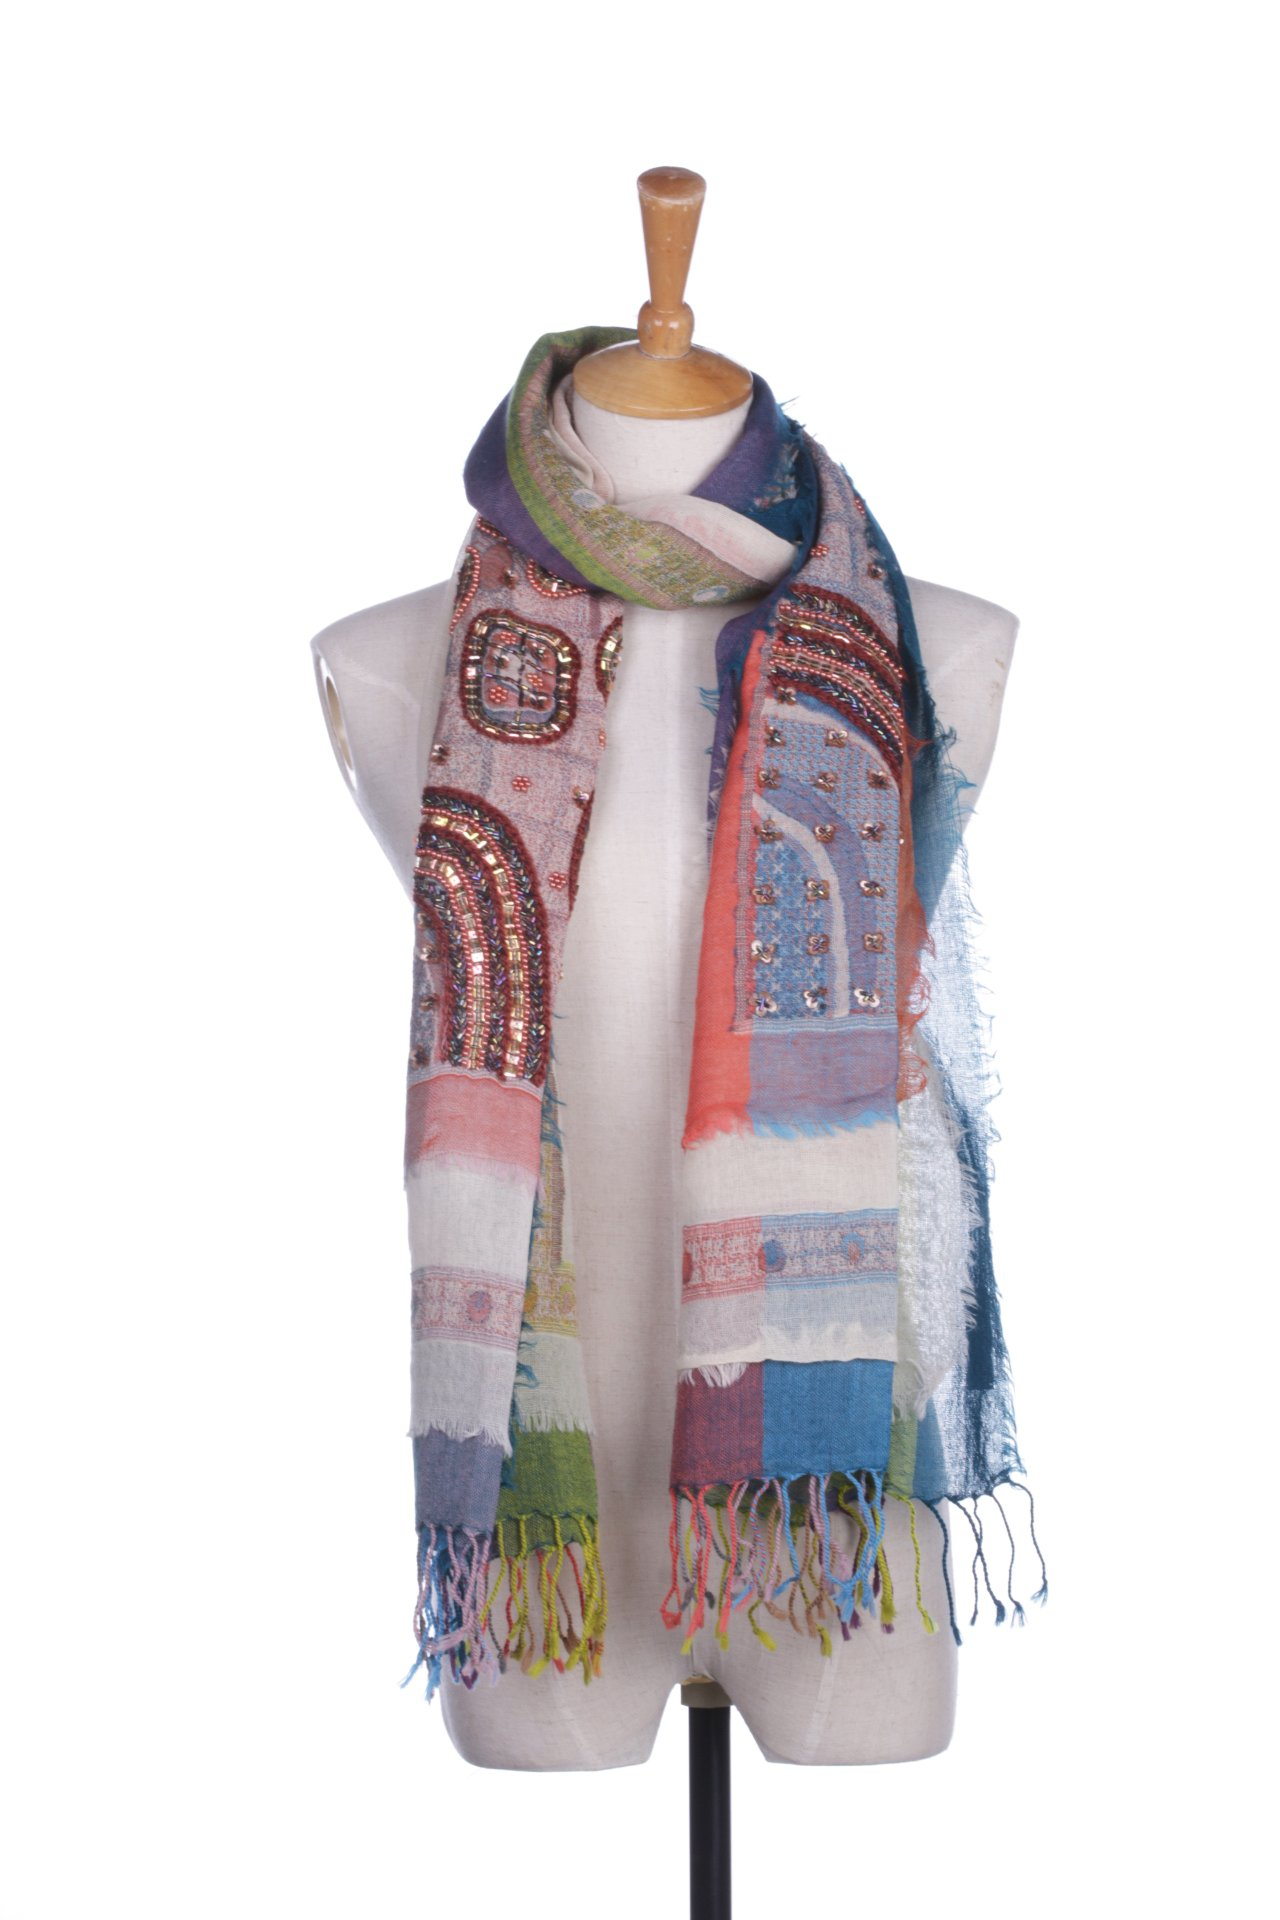 Hansile Fashion Autumn Winter Indian Style 100% Wool Warm Embroidery Scarf by hansile